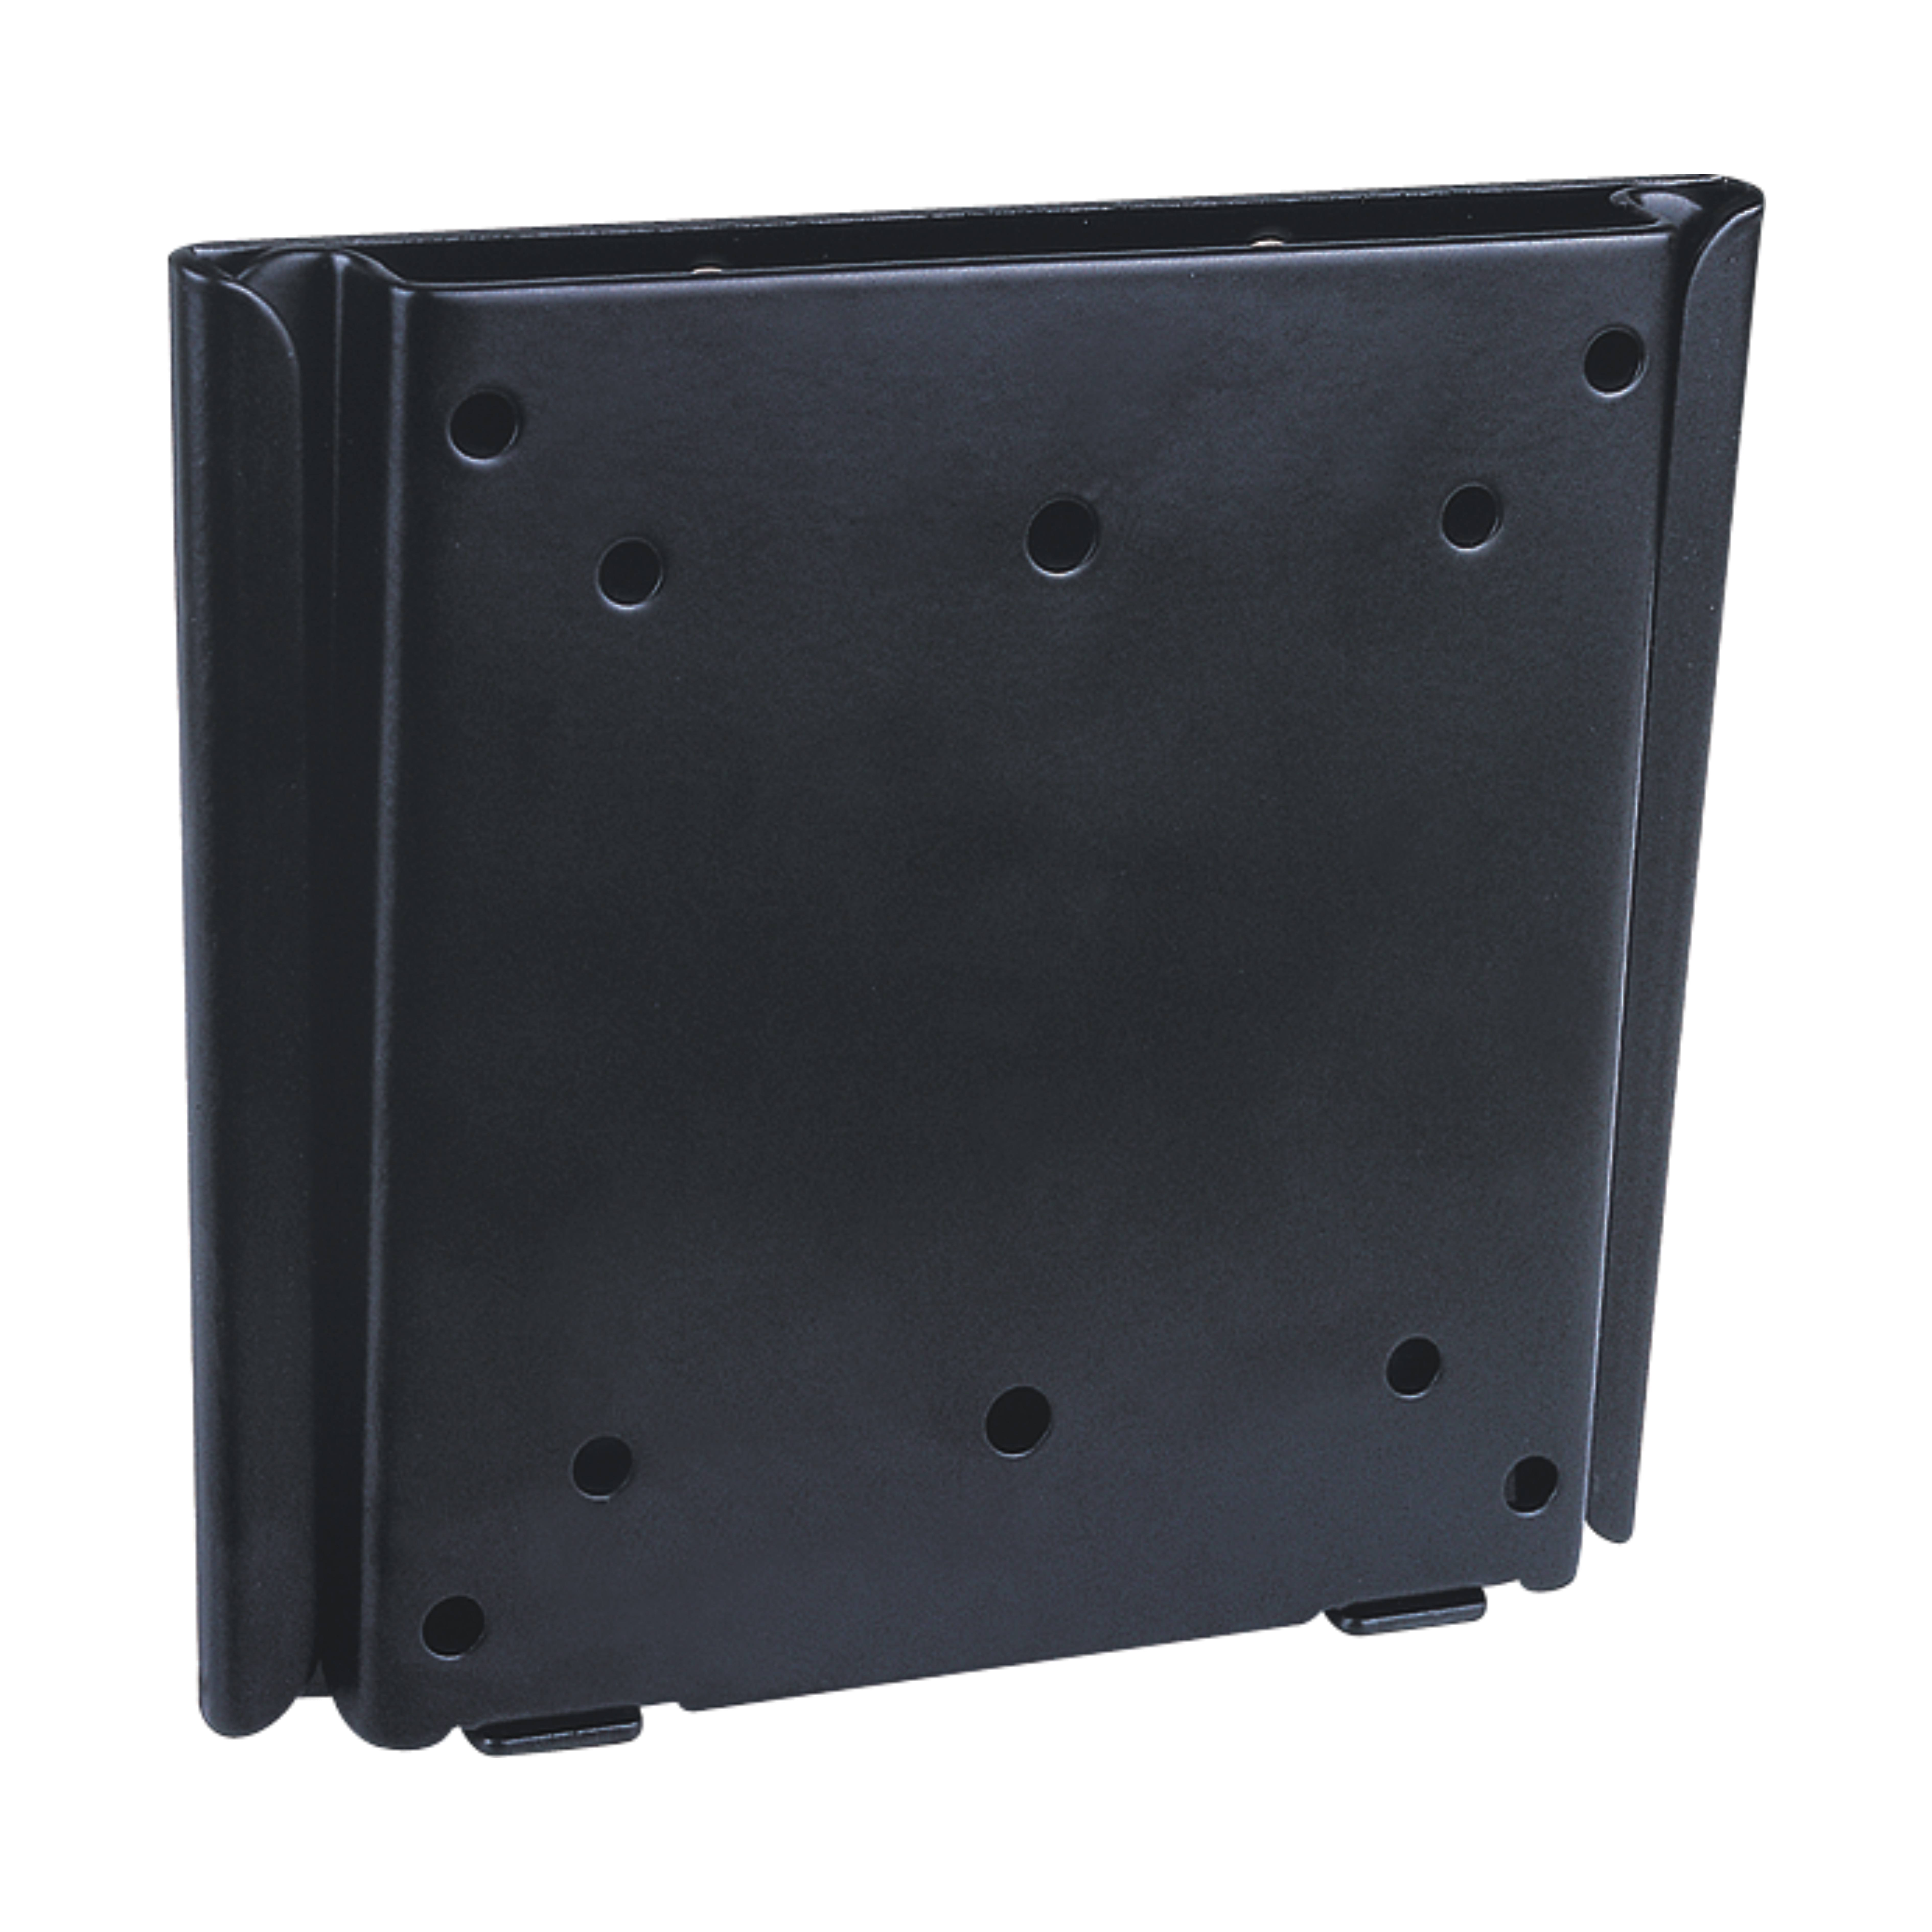 "LCD110 Max VESA 100 x100 Fixed Lcd Tv Wall Mount Bracket for 13"" ~ 30"" LED LCD TVs"